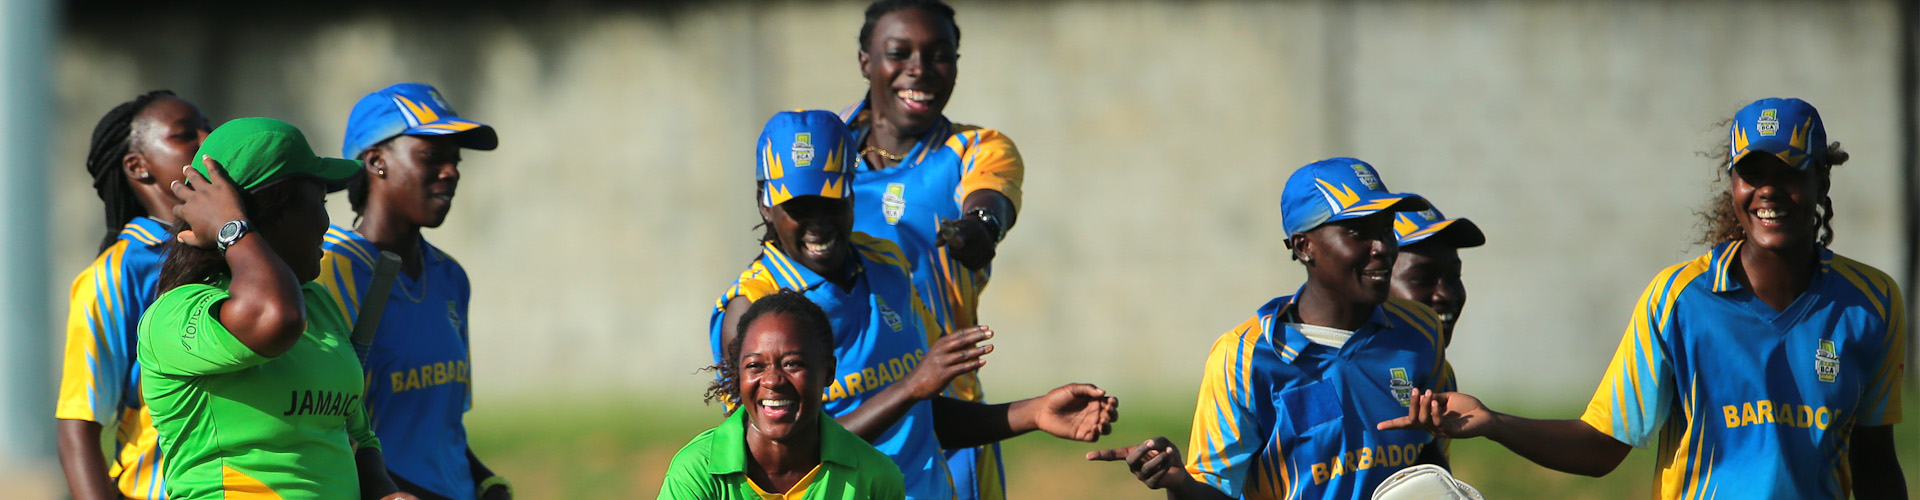 The BArbados Women's Cricket team victorious vs the Jamaicans